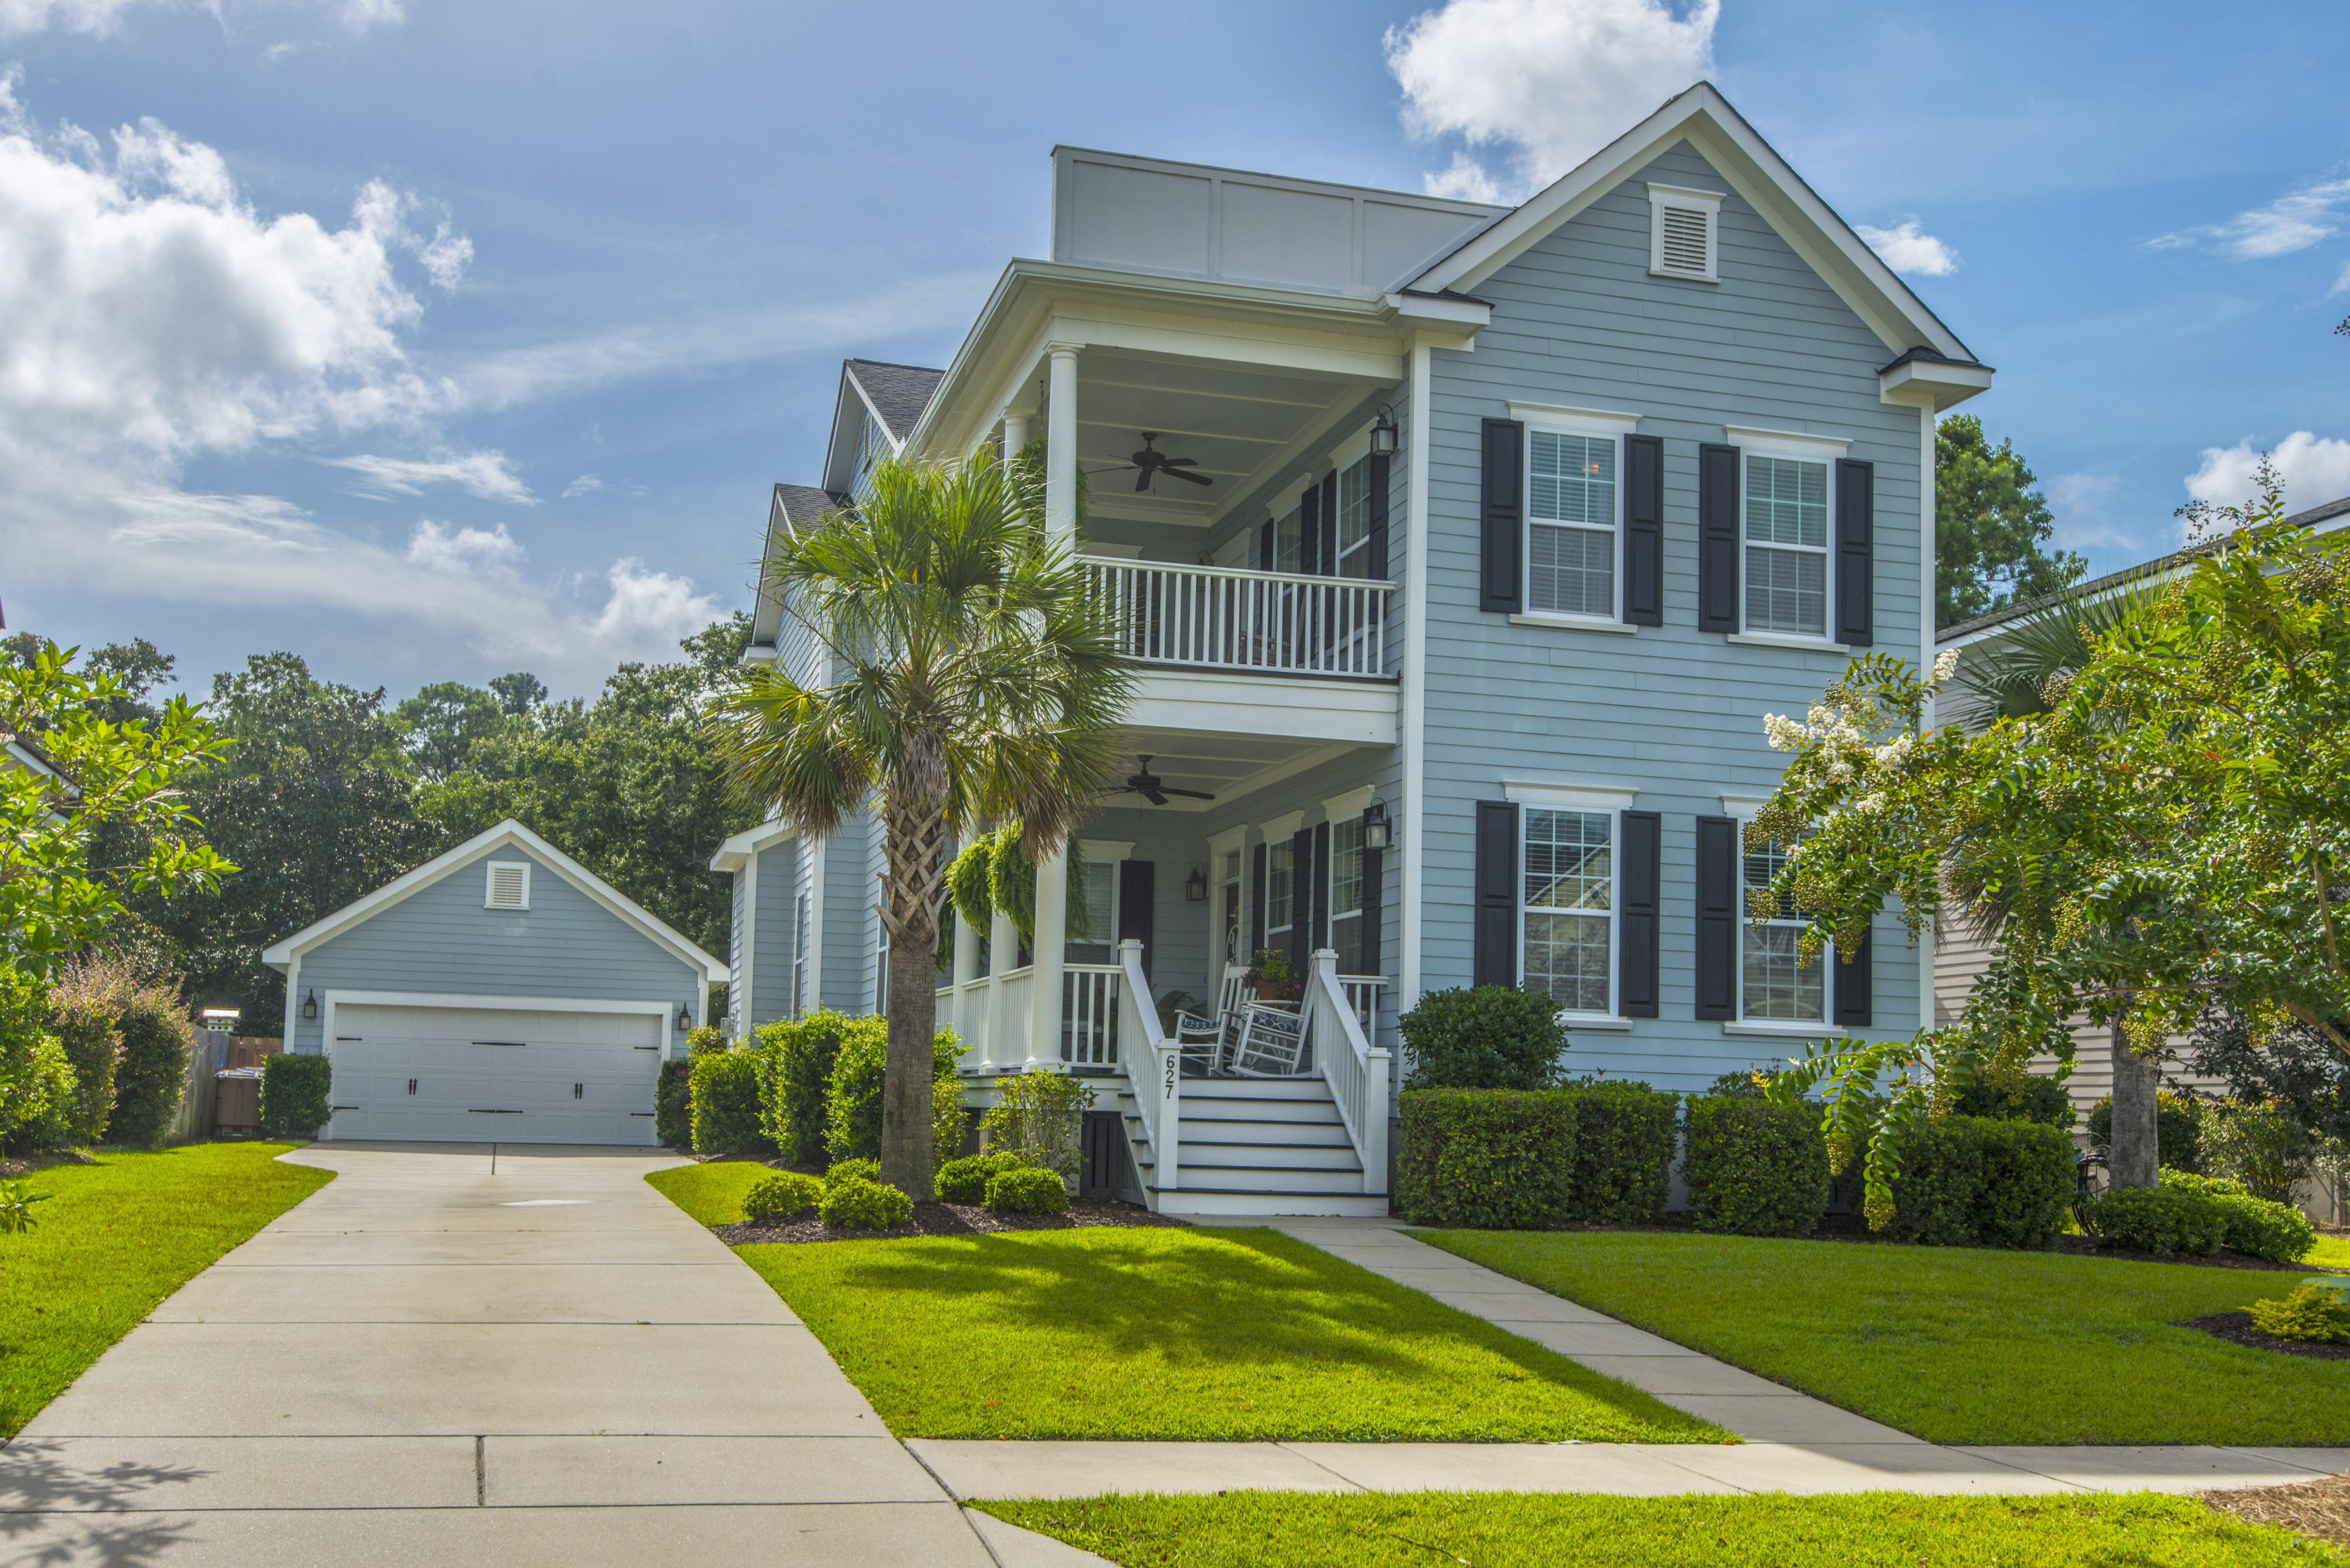 Cloudbreak Court Homes For Sale - 627 Cloudbreak, Charleston, SC - 1